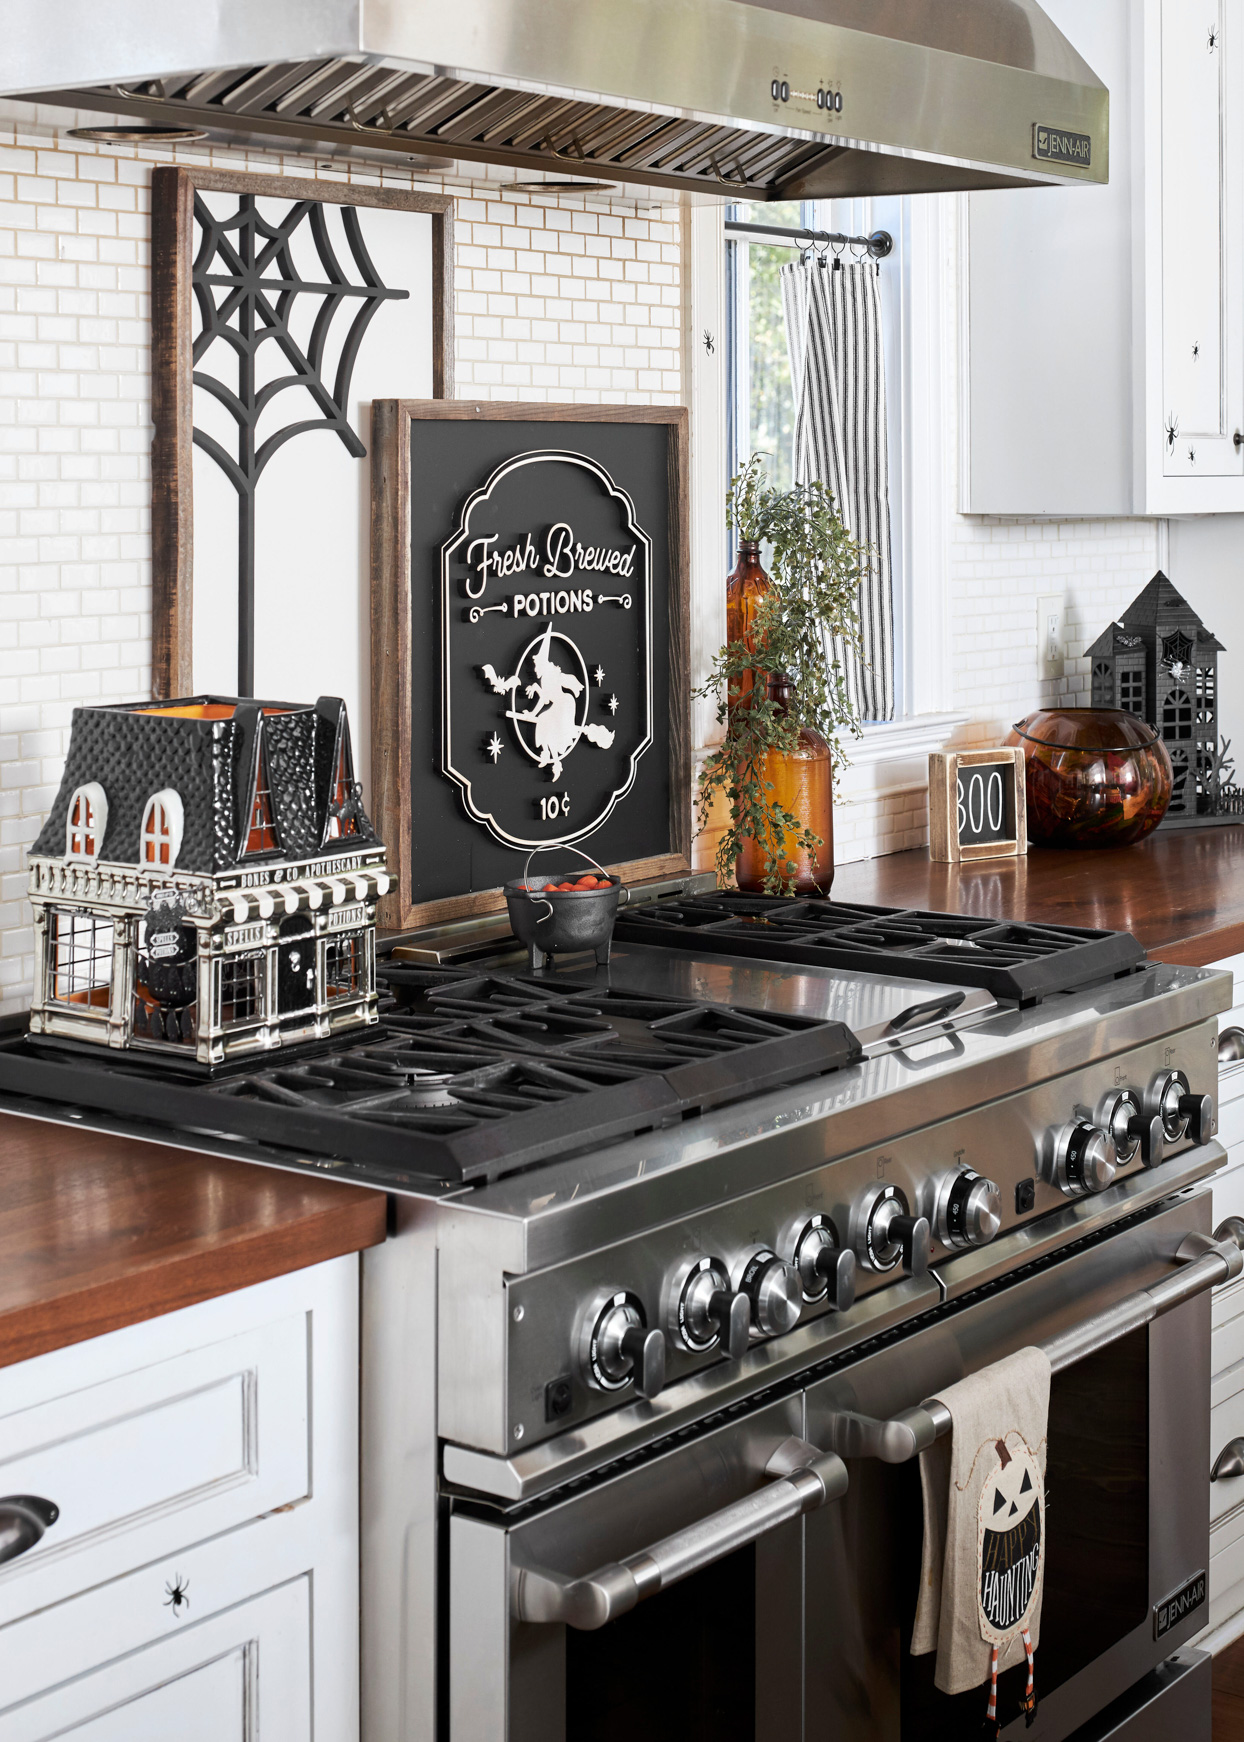 halloween kitchen decor with decorative haunted house on stovetop